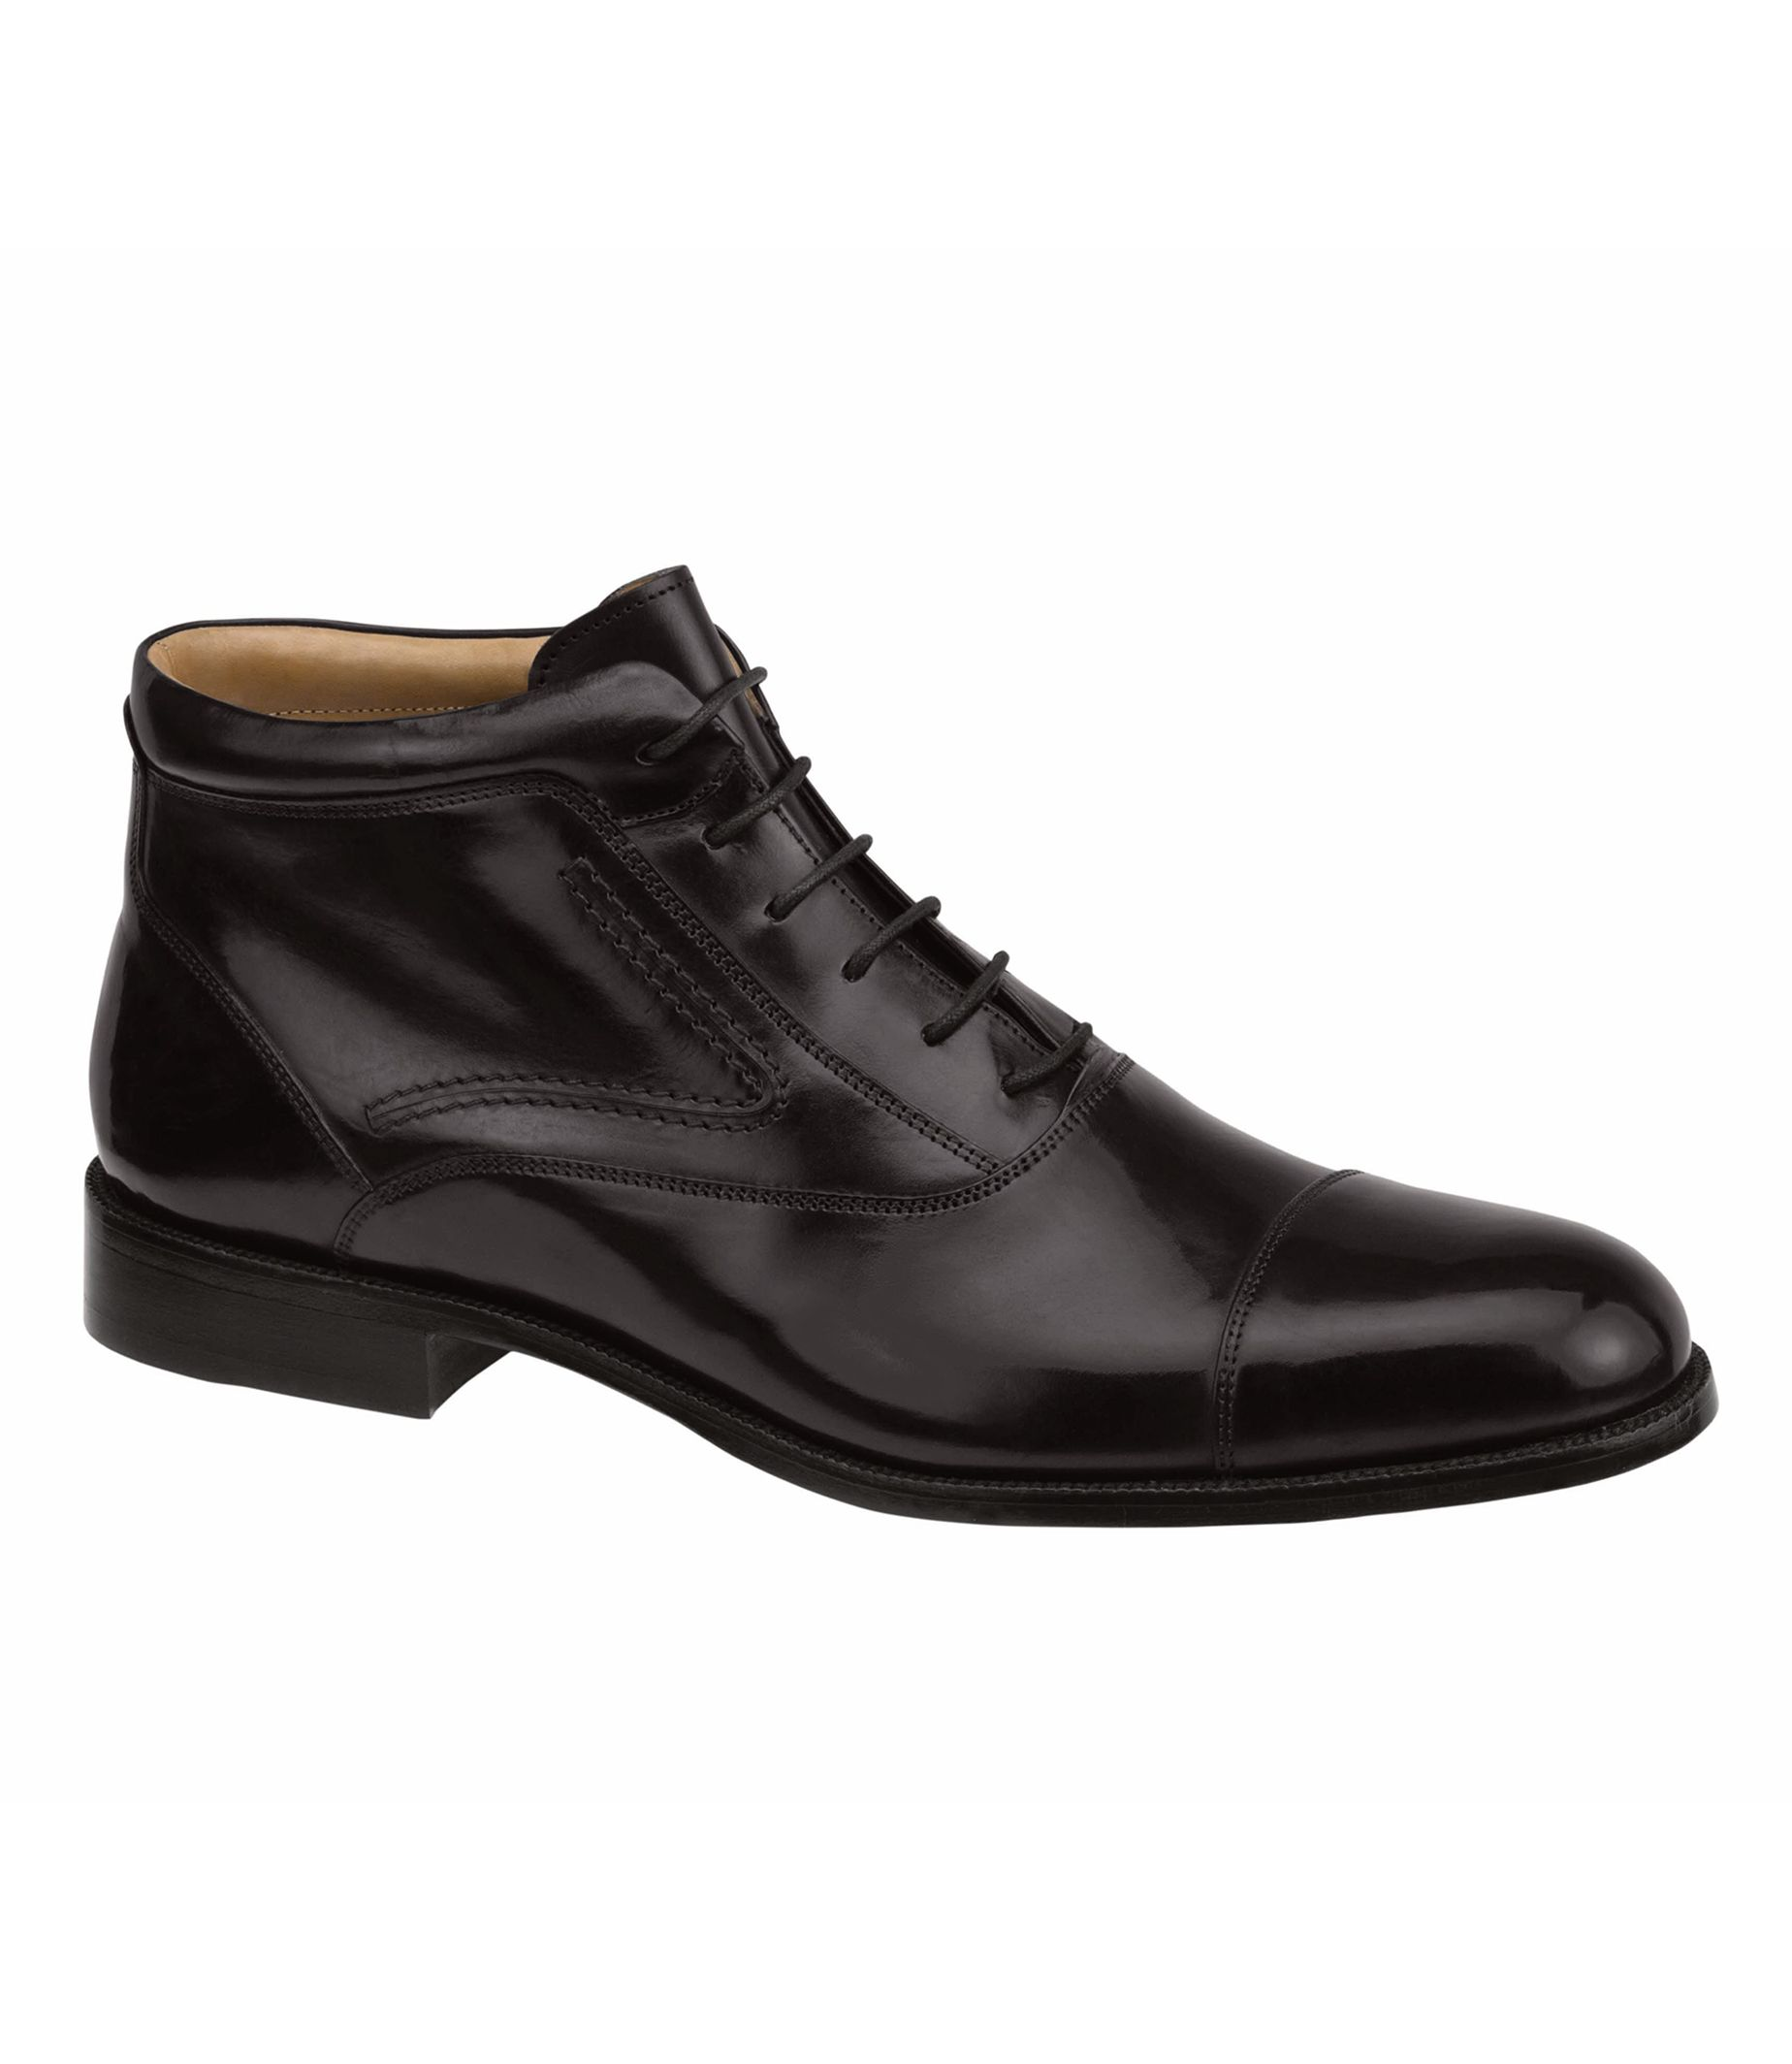 Stratton Cap Toe Boot by Johnston and Murphy